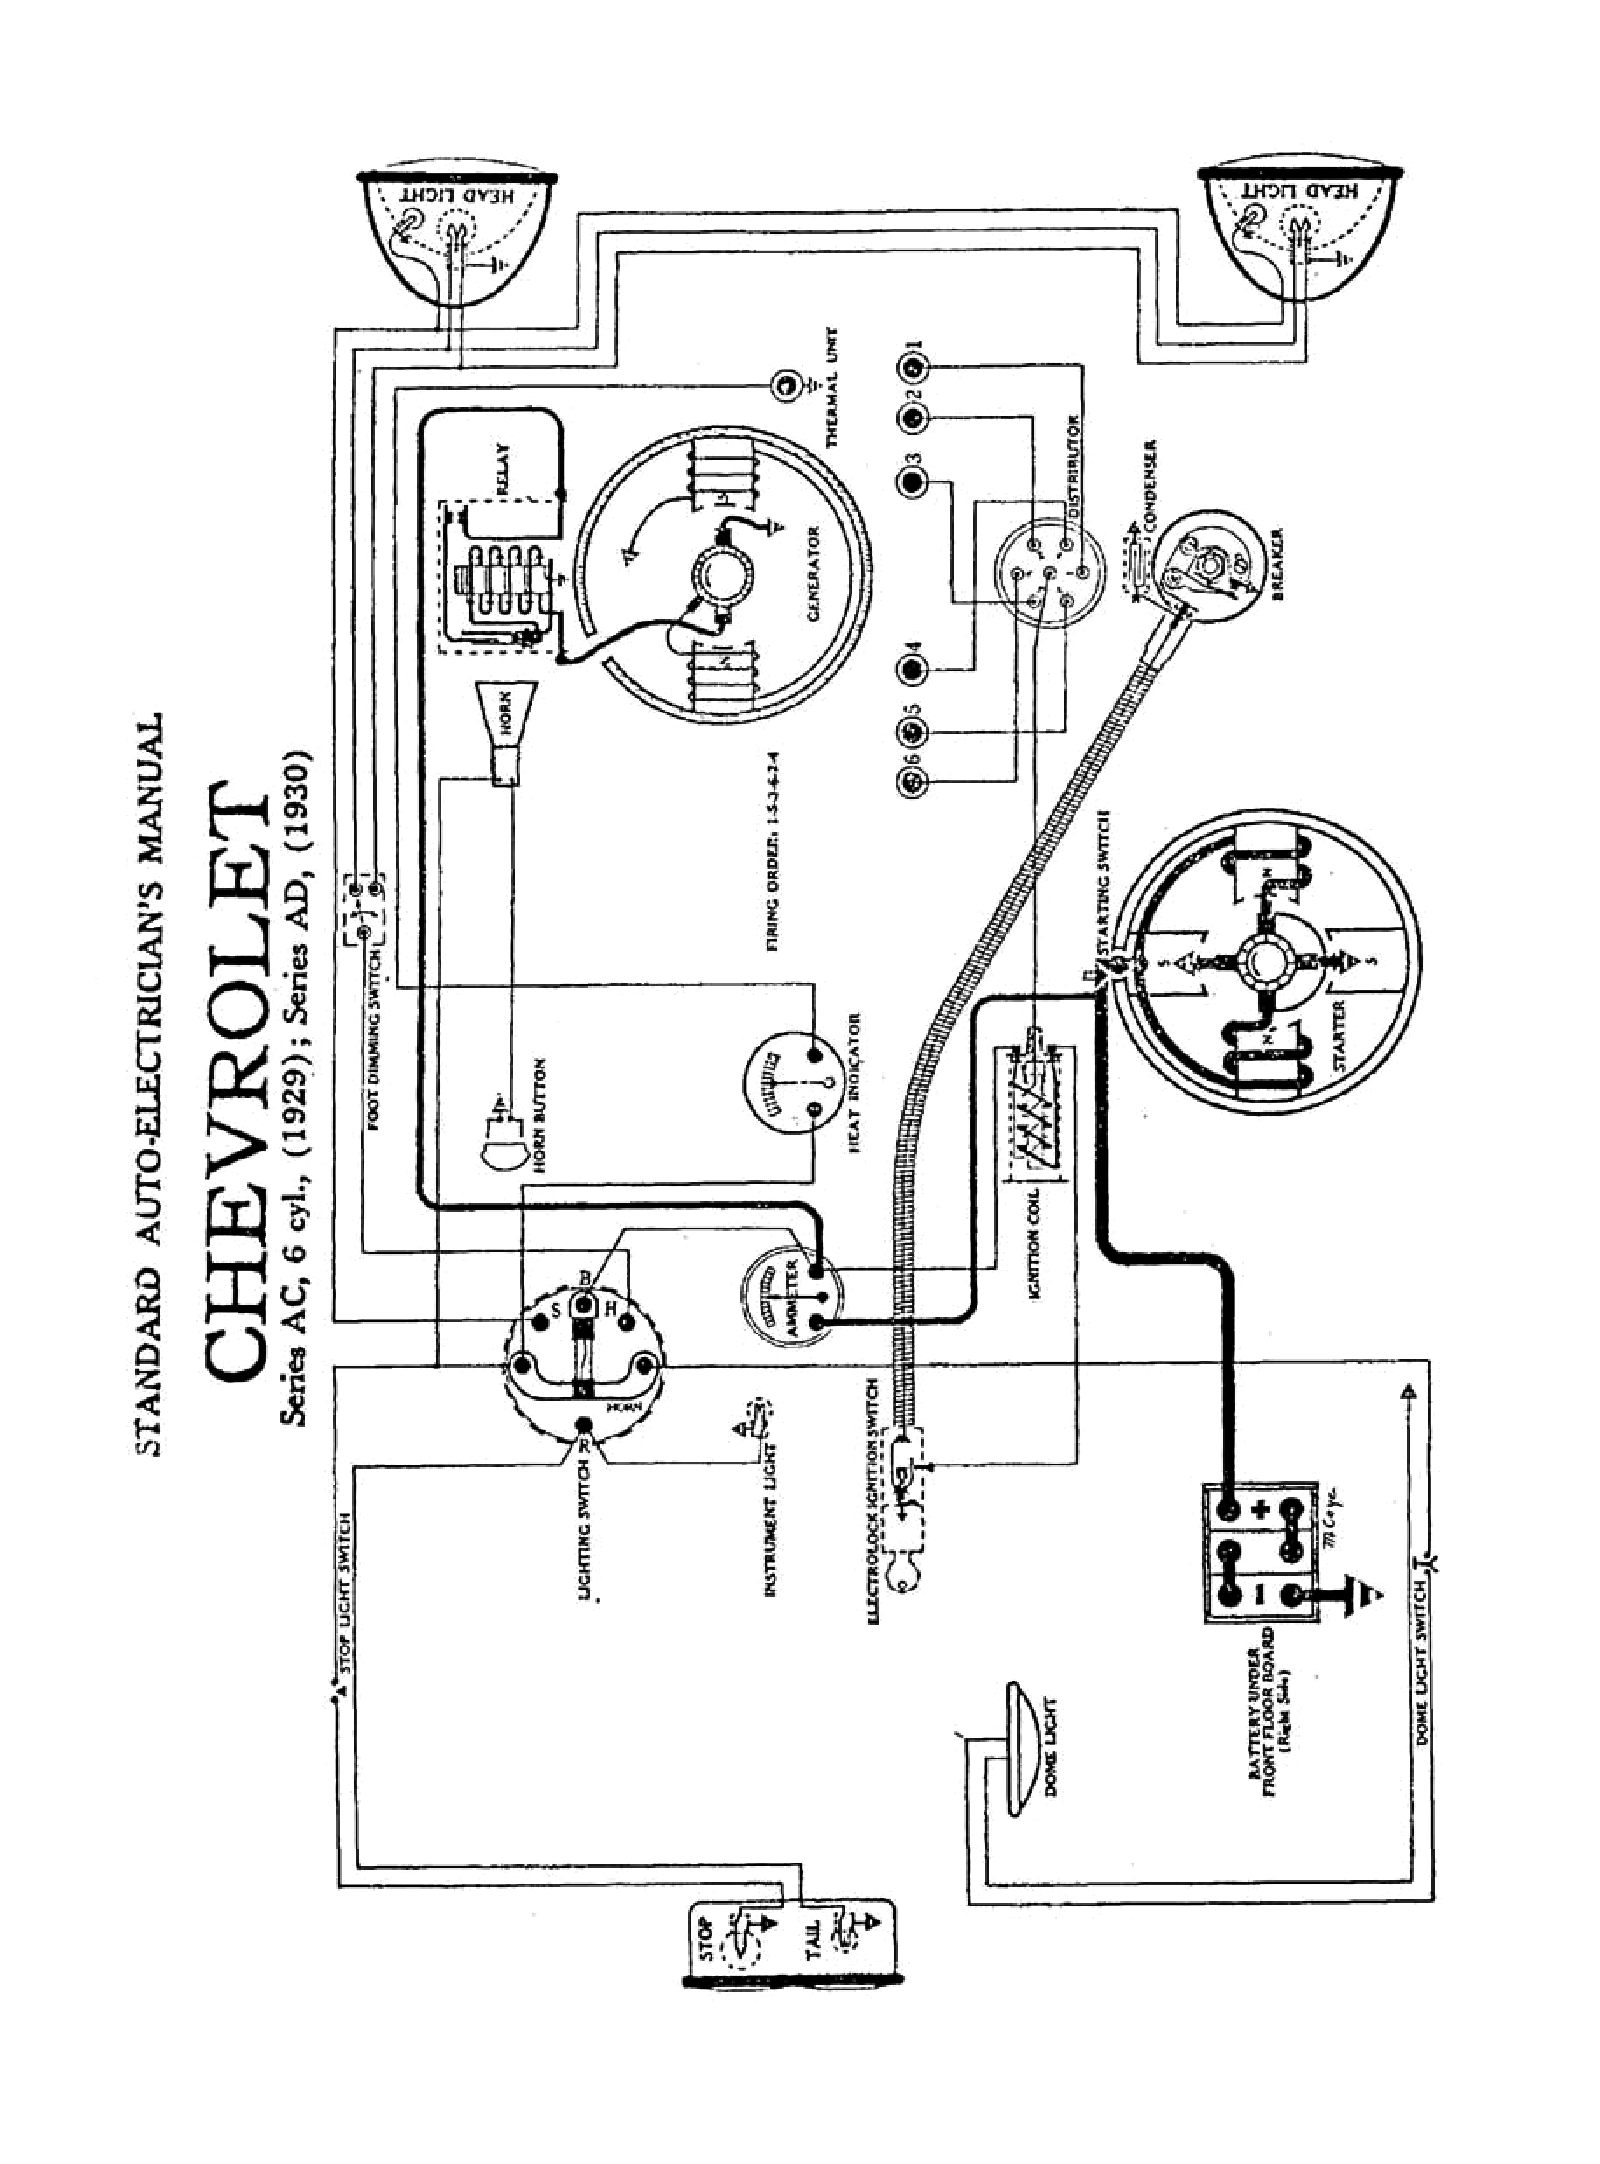 chevy wiring diagrams Ford Ignition Switch Wiring Diagram 1930 series ad model 1931, 1931 wiring diagrams · 1931 lighting & ignition